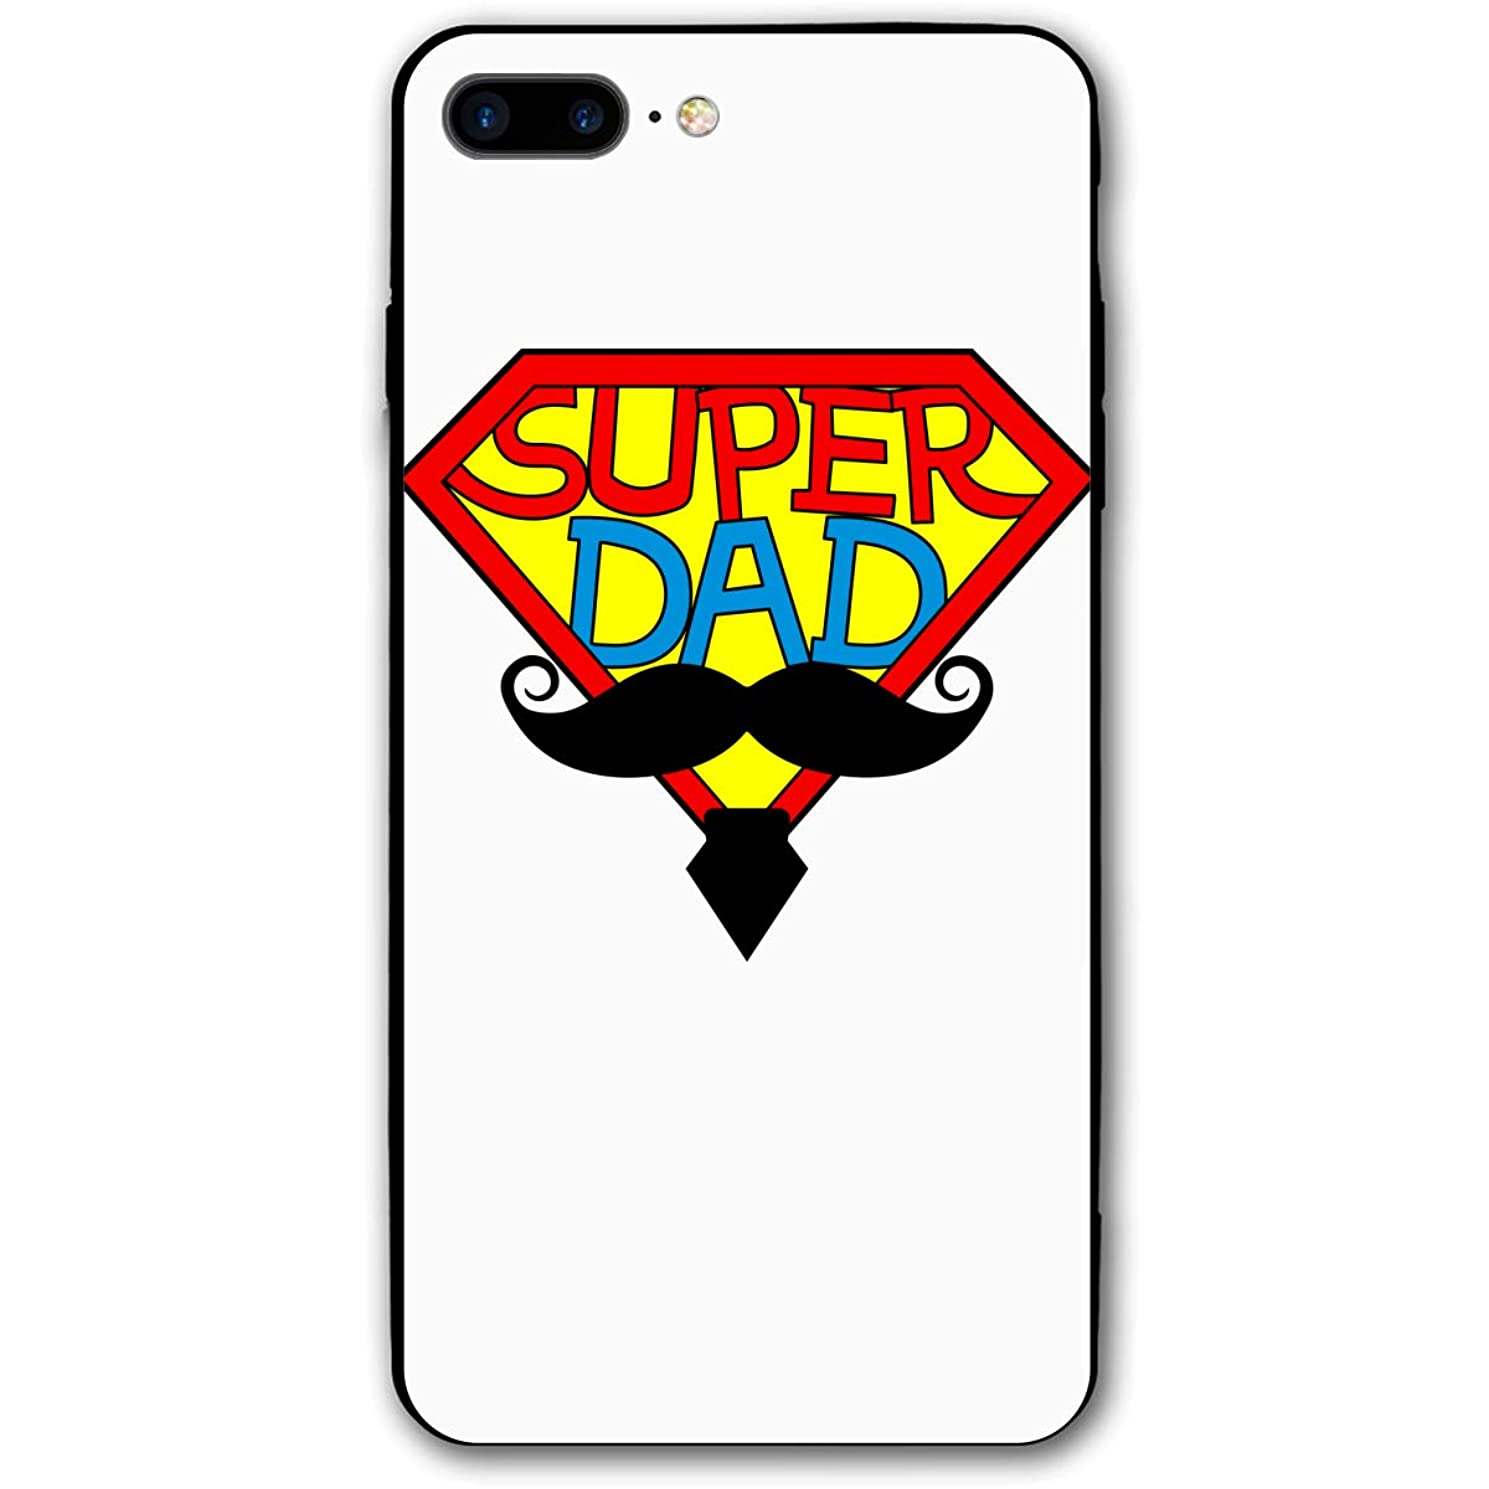 Xyybbn Super Dad Have Big Beard Good Shock Absorbent iPhone Cover Mobile Case for iPhone 7Plus/8Plus